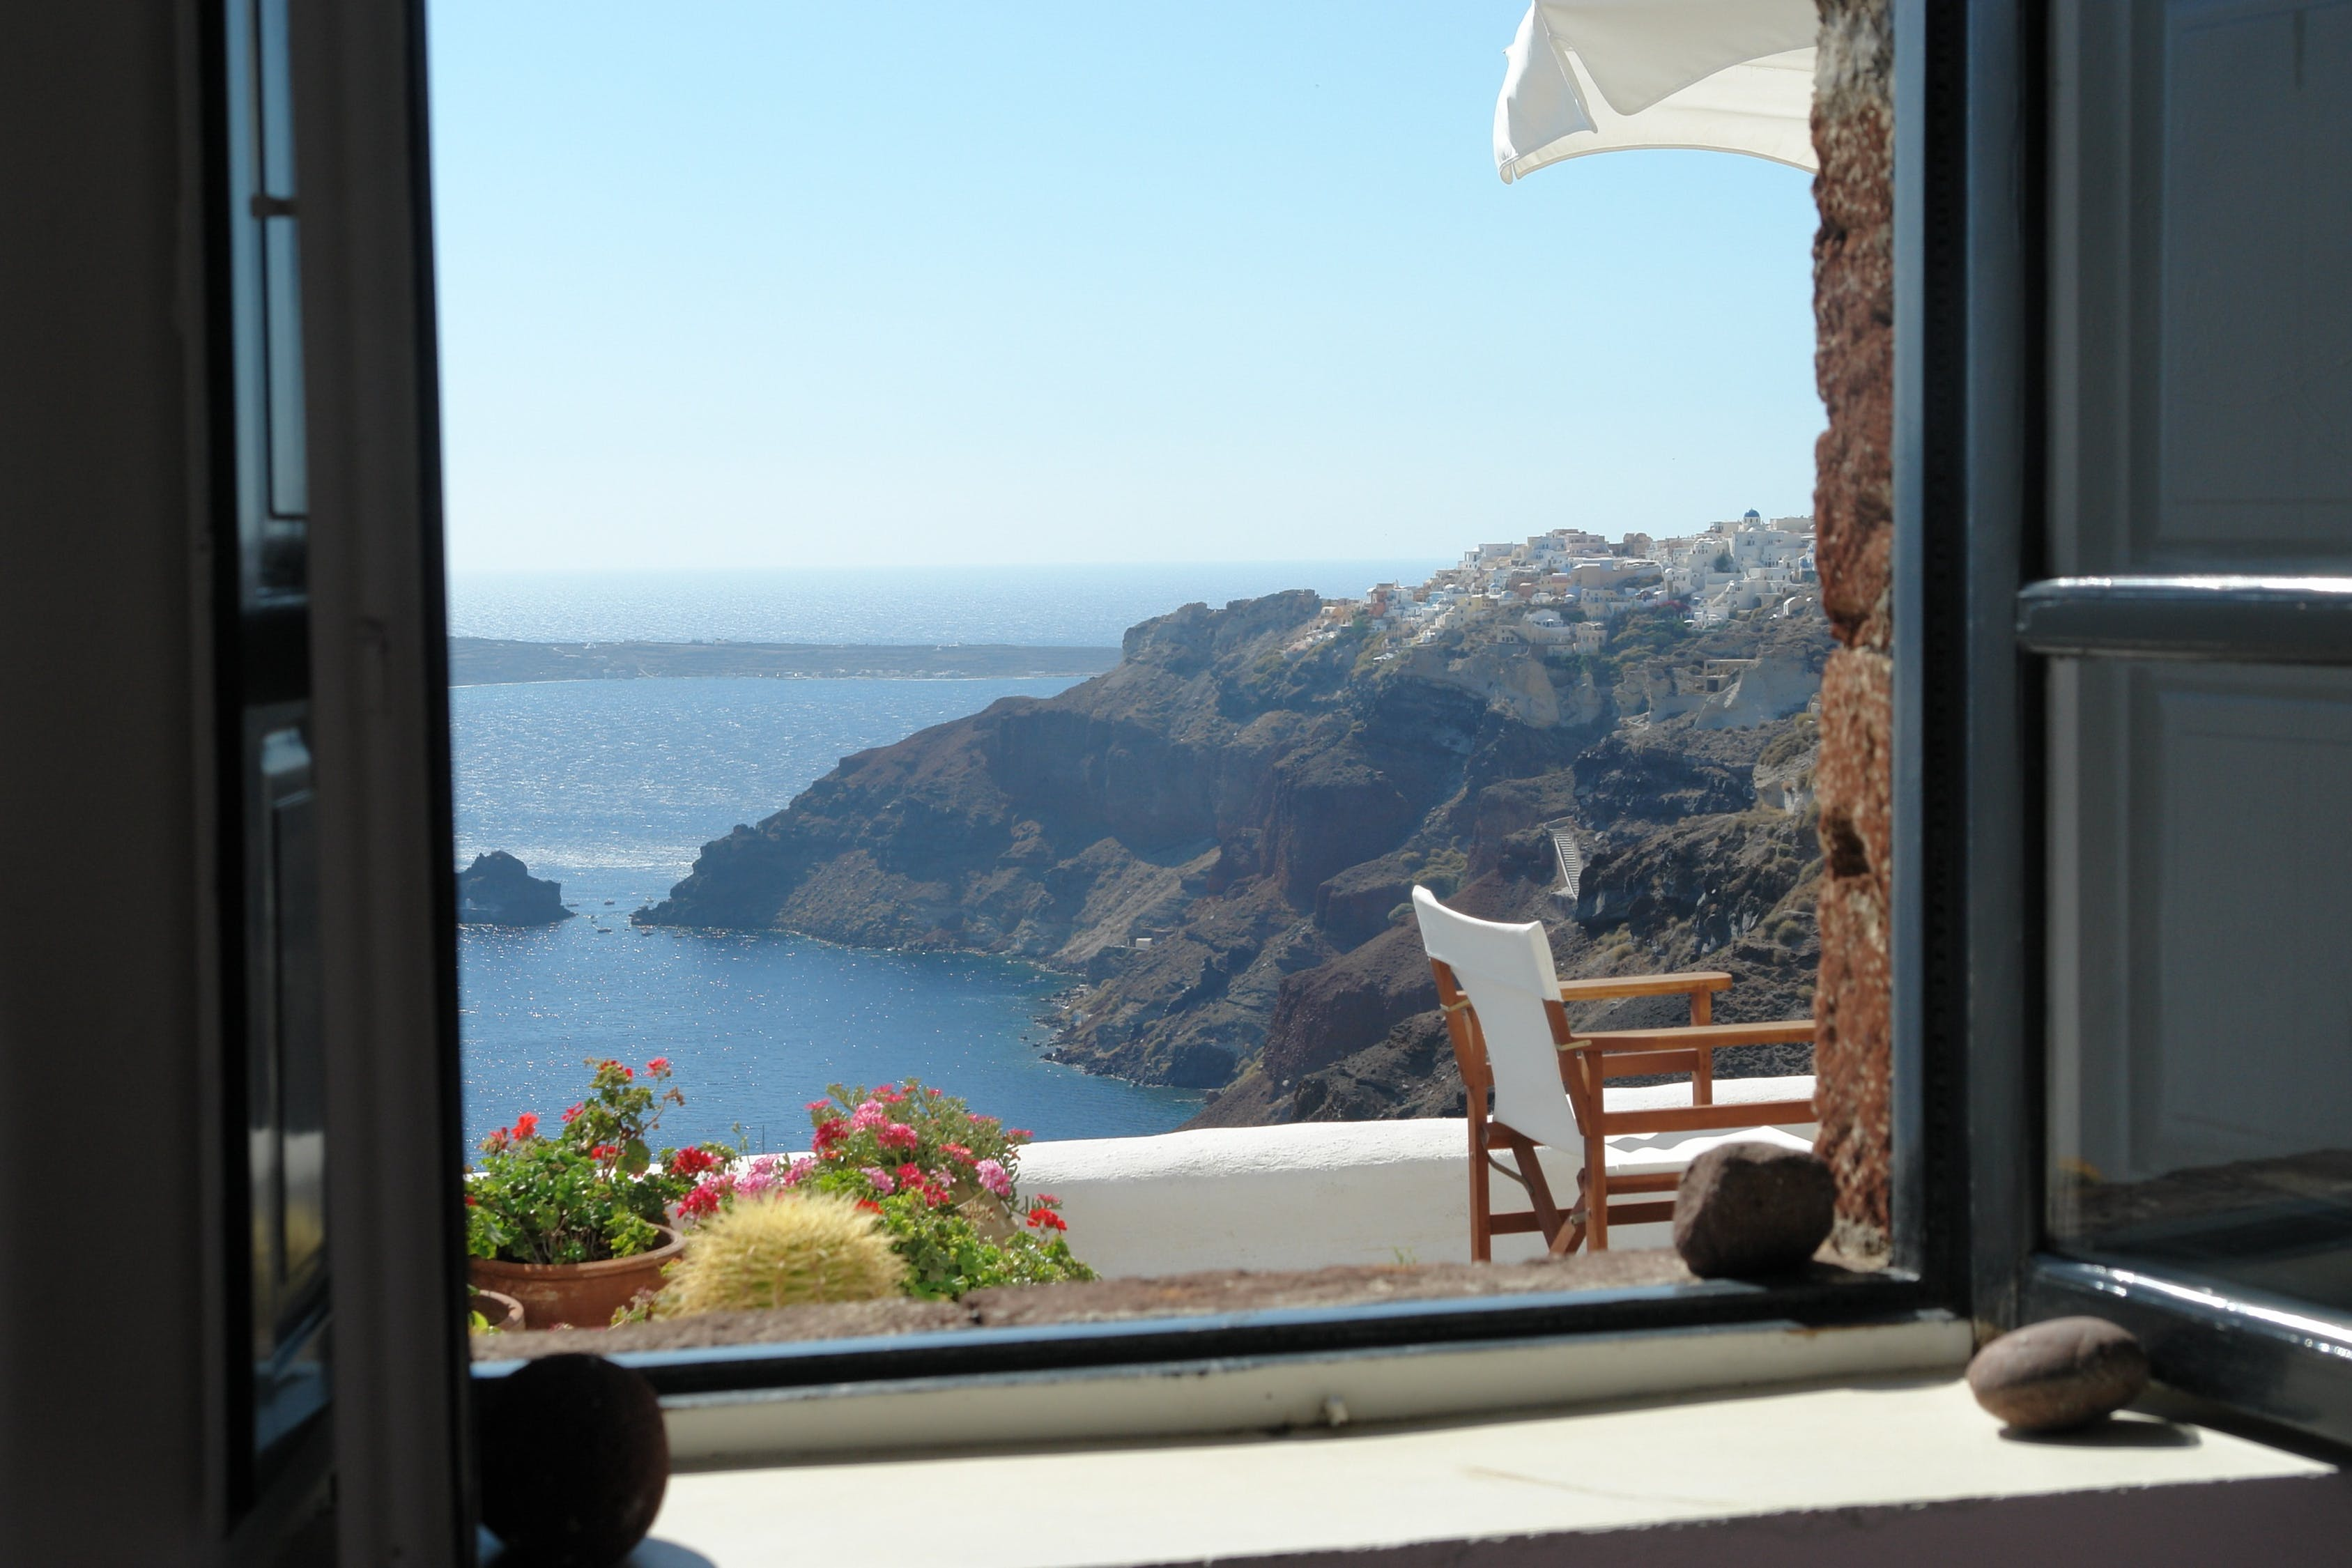 Tax on a holiday let property